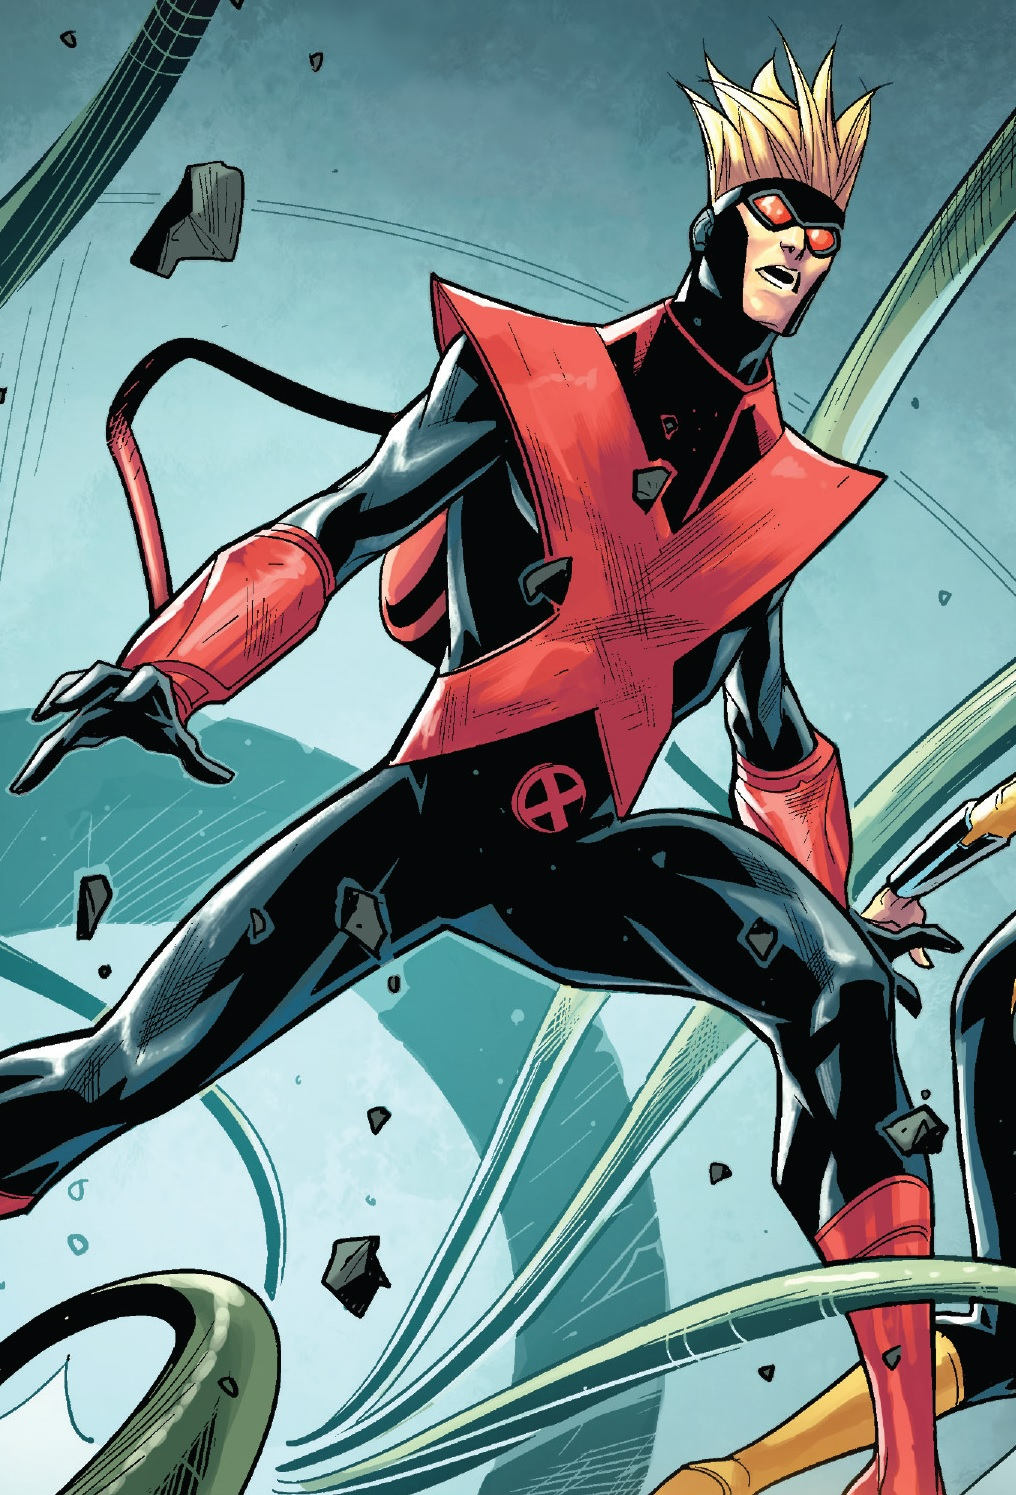 Depiction of Pyro bracing himself for a fight. Once a villain, Pyro is a bisexual member of the X-Men.